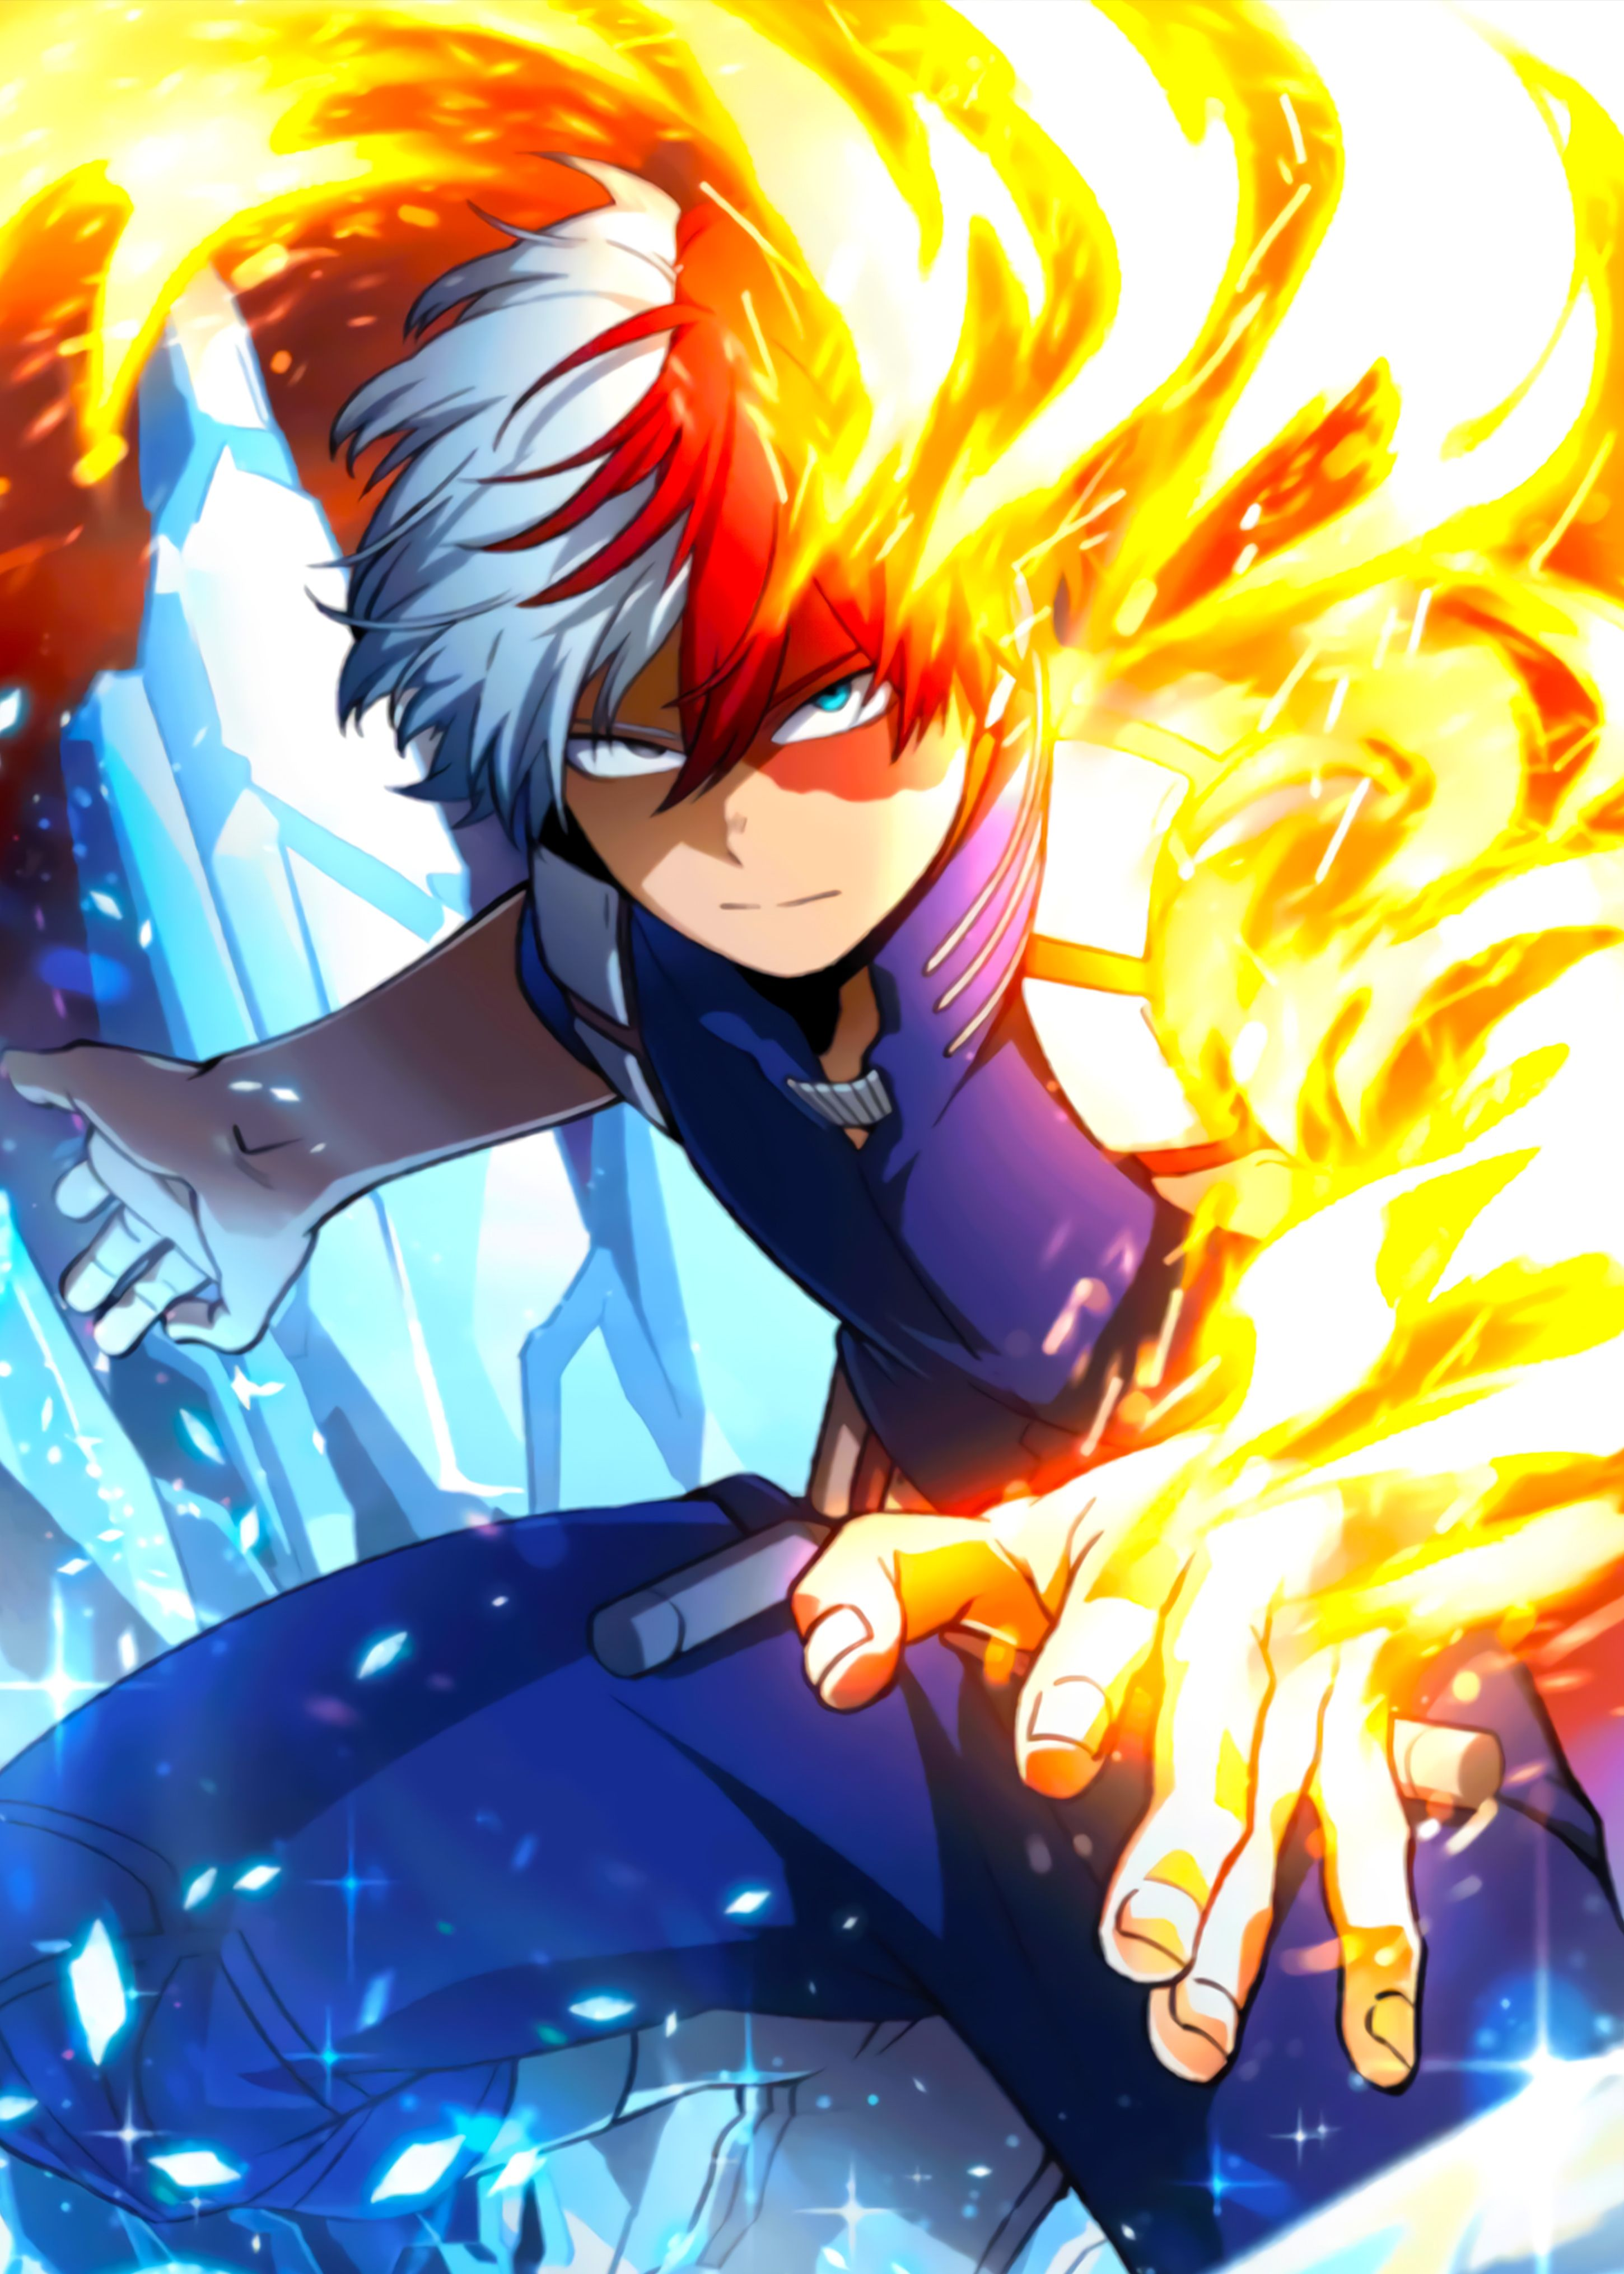 Show off your style with artwork and trending designs from independent artists across. Shoto My Hero Academia in 2020   Anime, Anime guys, Anime ...